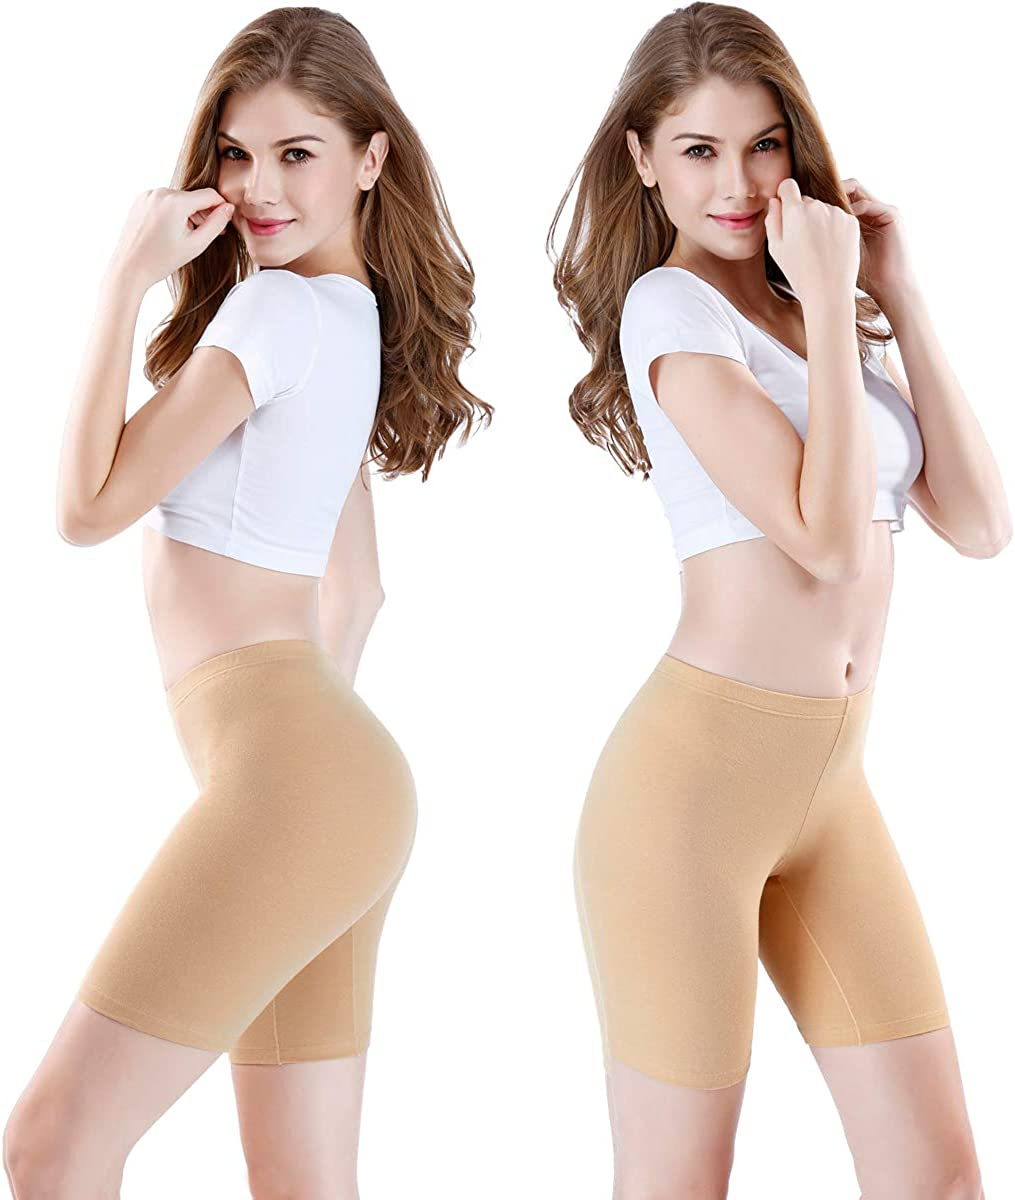 wirarpa Ladies Safety Boxer Shorts Cotton Anti Chafing Long Leg Knickers Underwear Womens Boy Shorts Leggings for Under Dresses Multipack